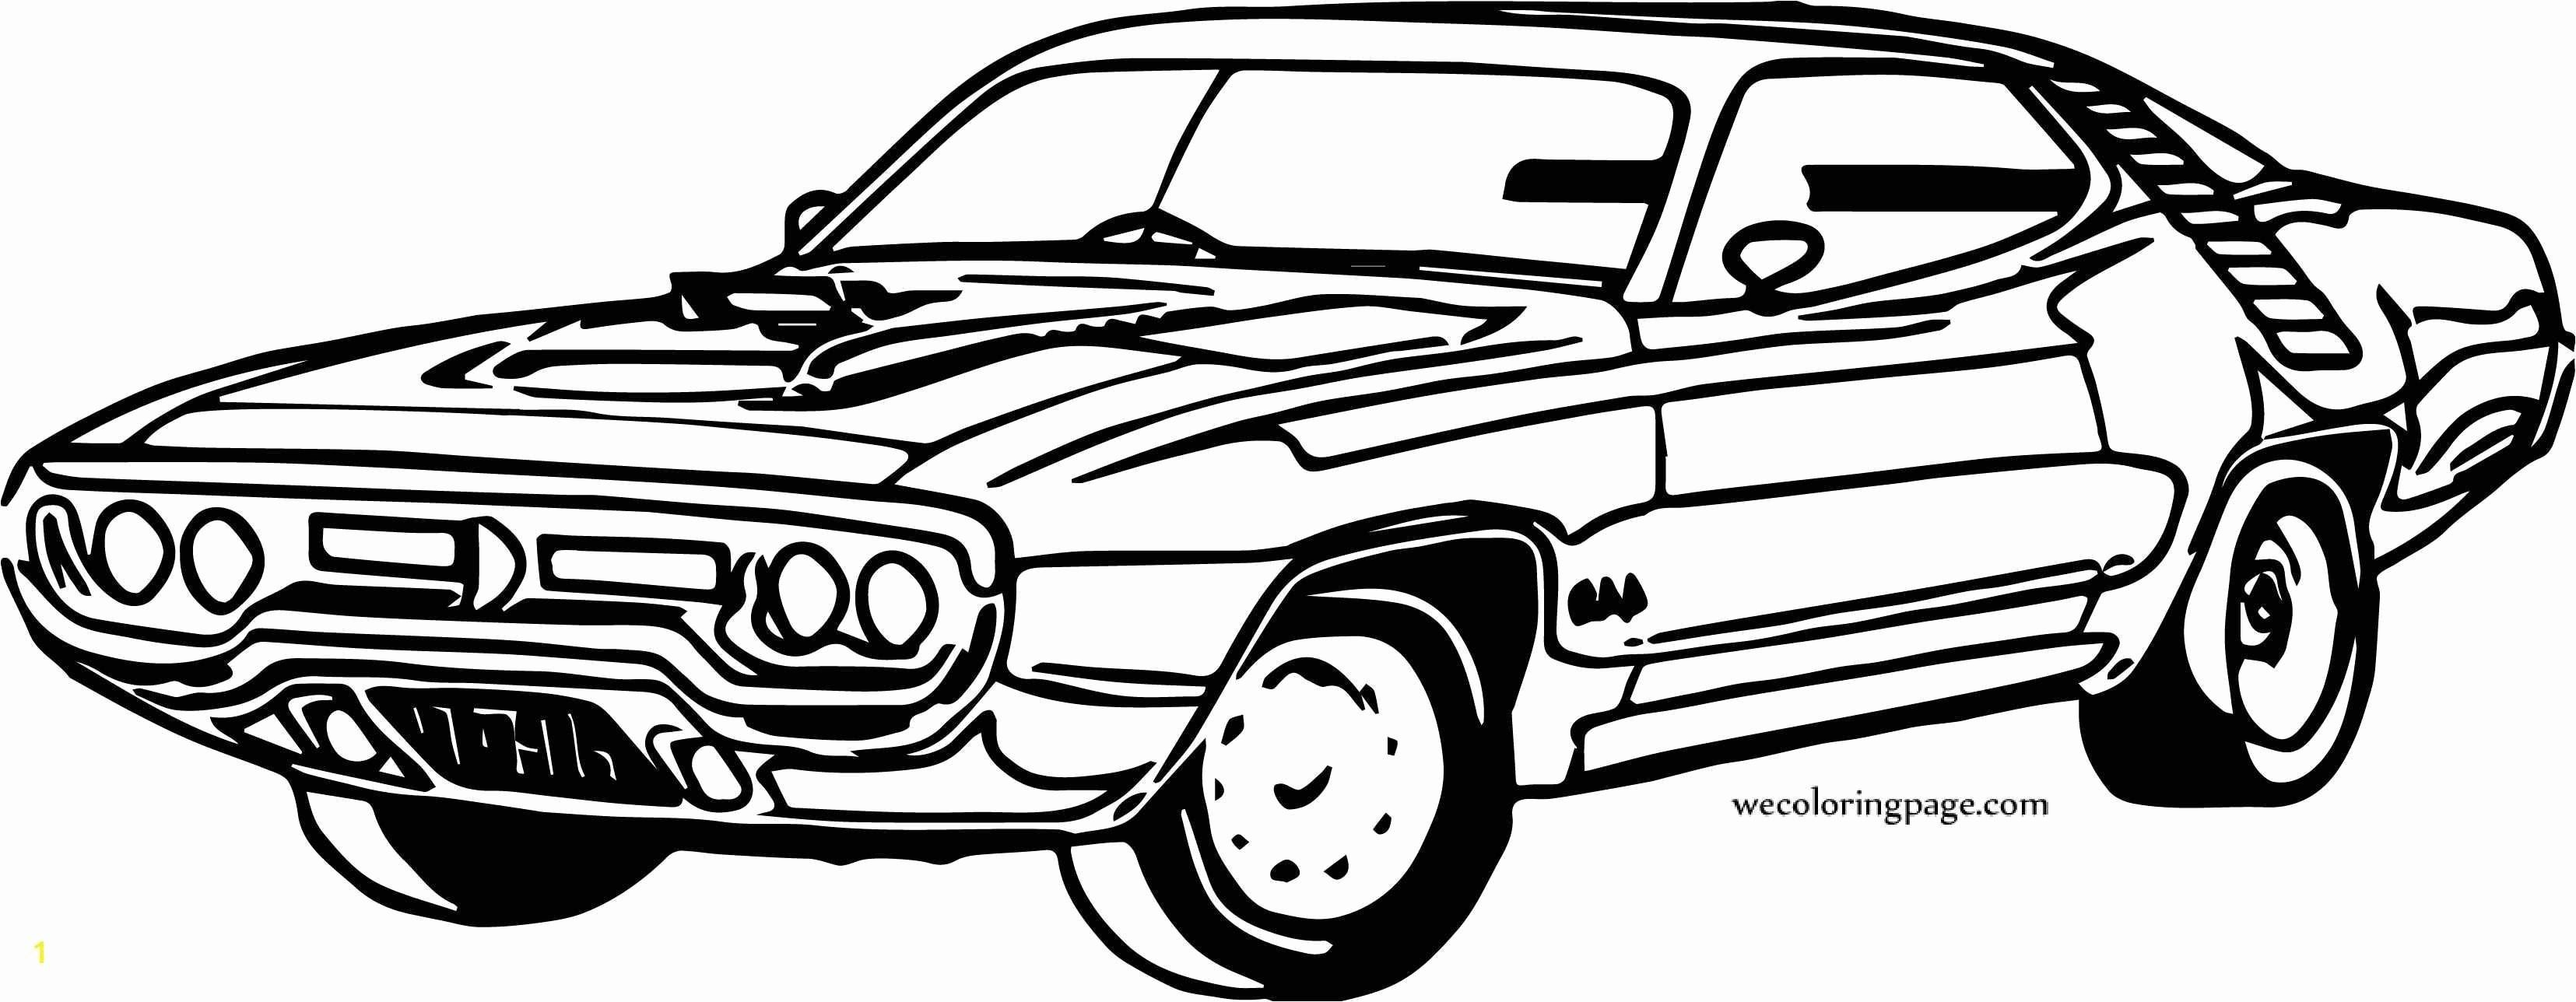 Truck Coloring Pages For Adults